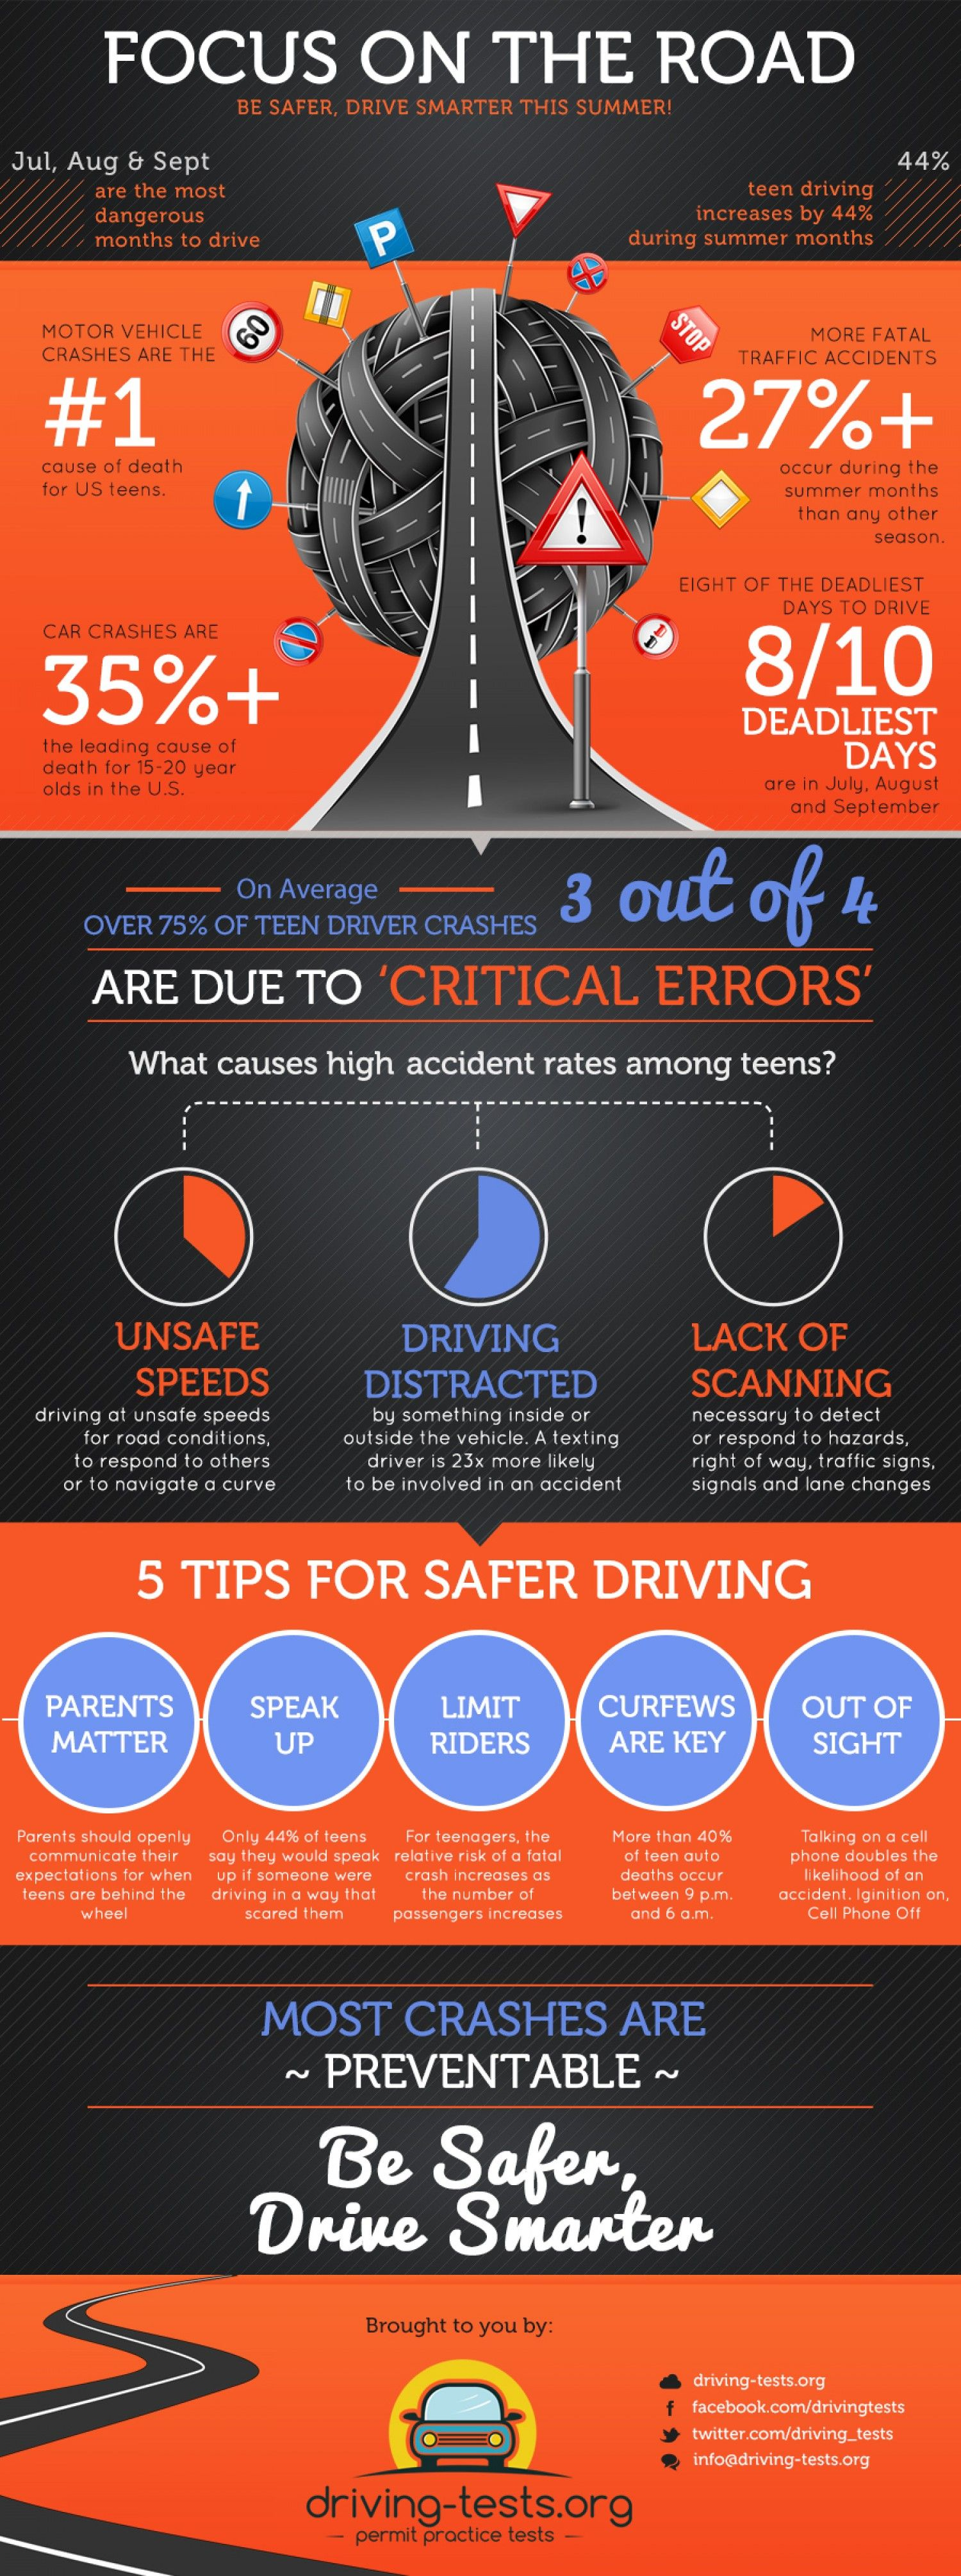 Focus on the Road Infographic Drivers education, Driving